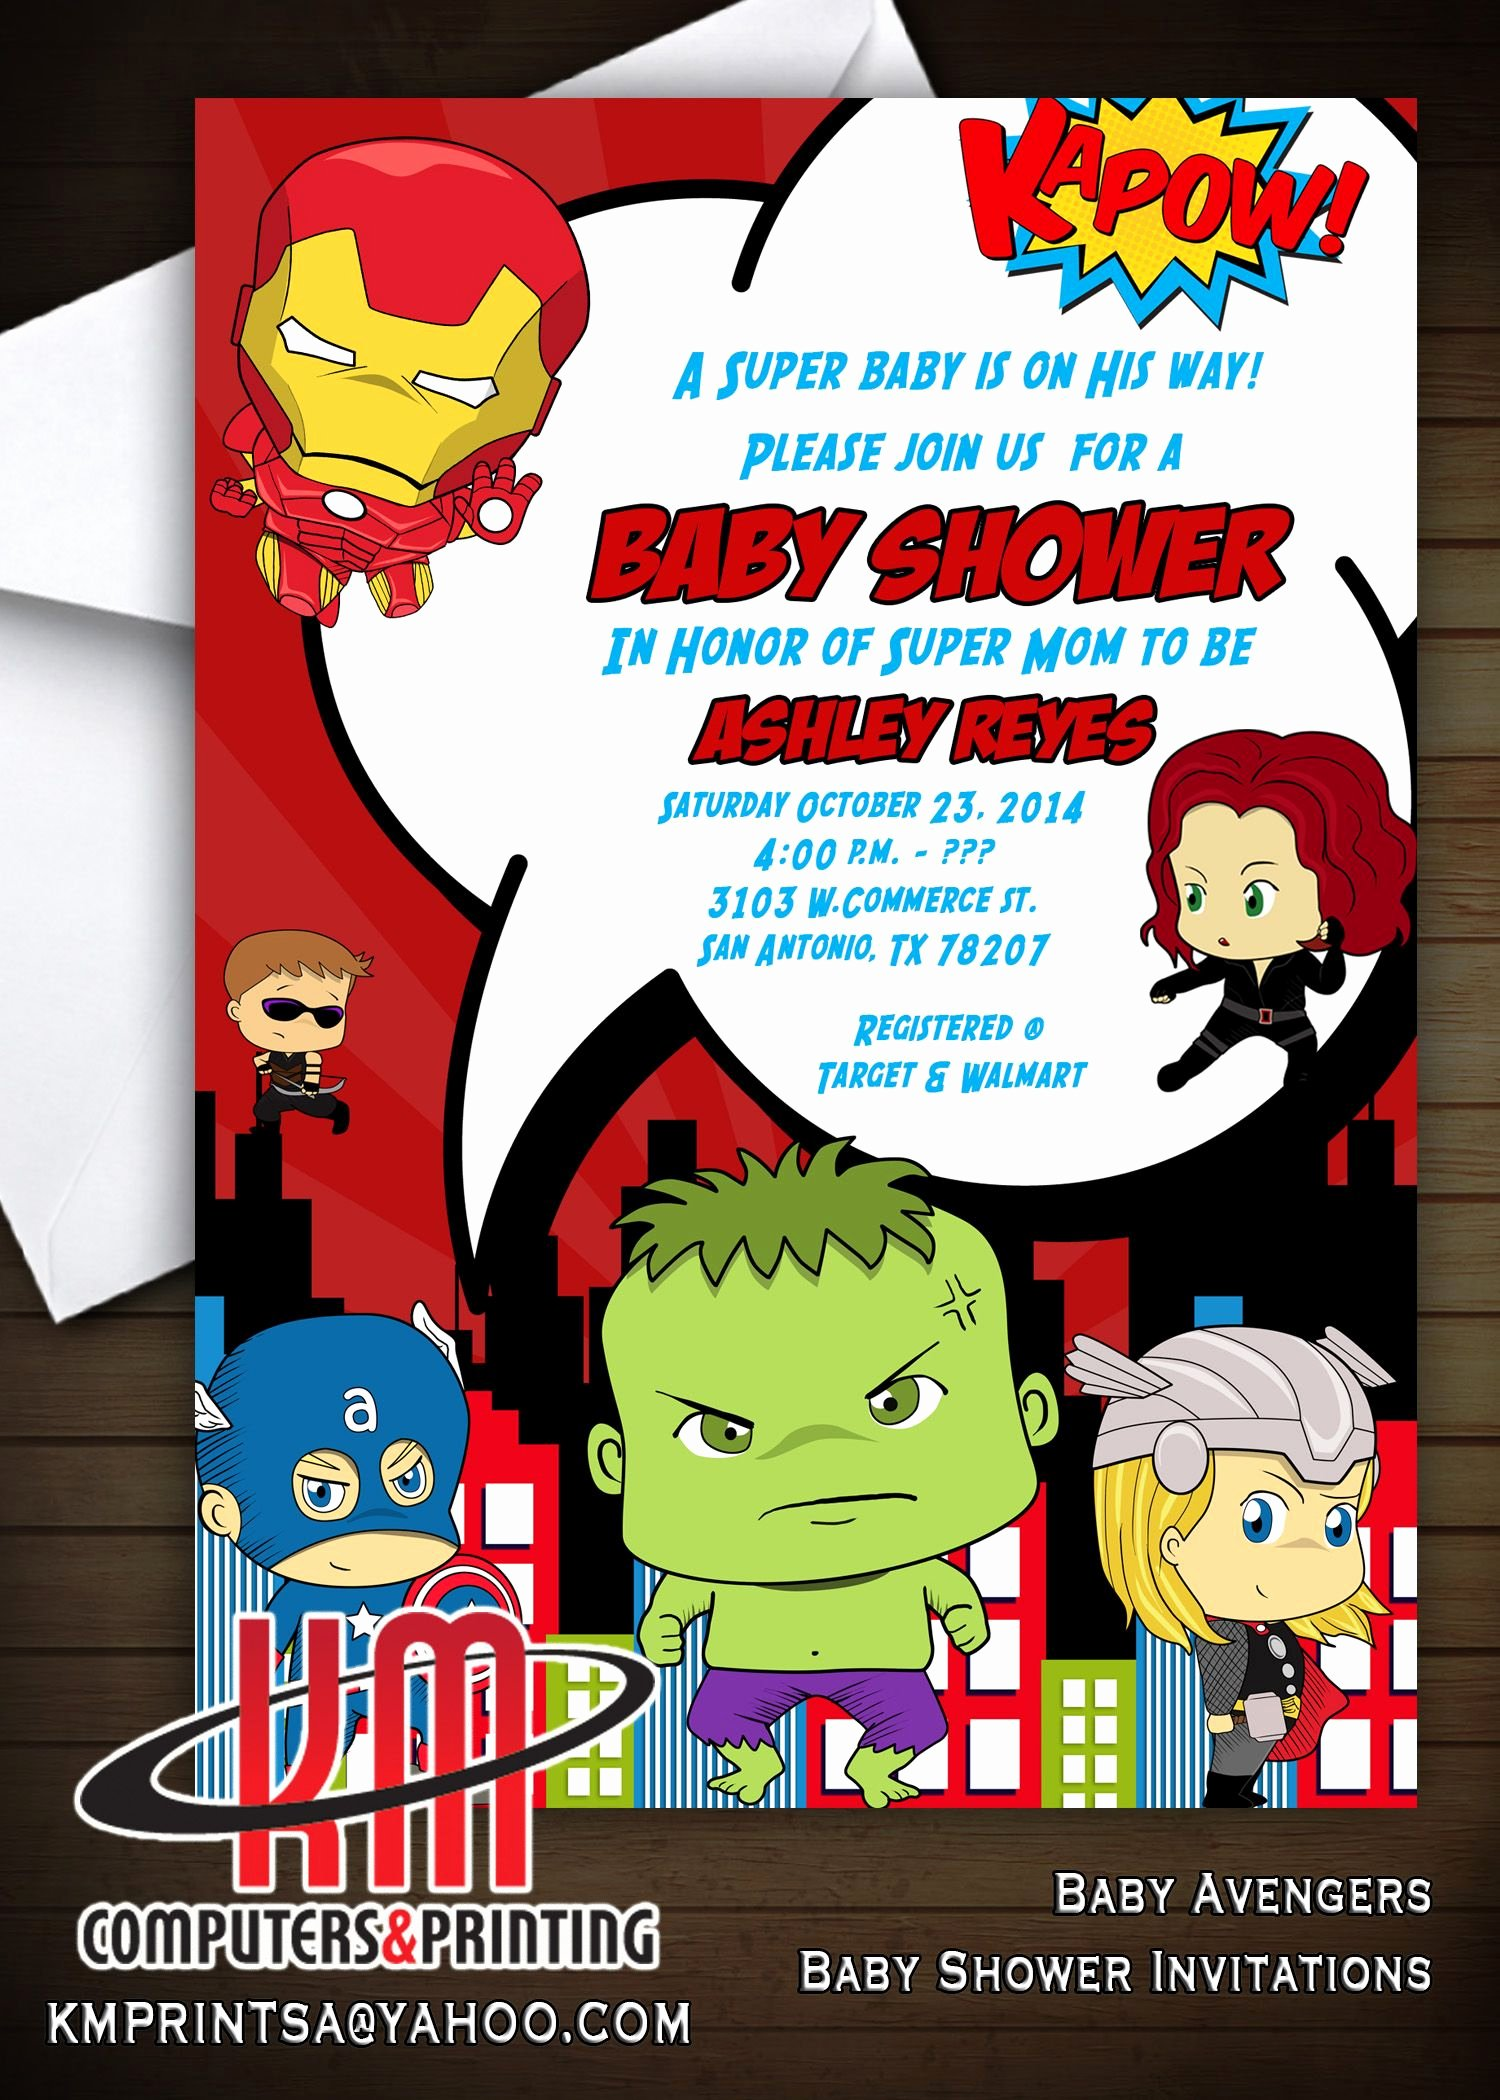 Avenger Birthday Party Invitations Beautiful Baby Avengers Invitations Digital or Printed Available for